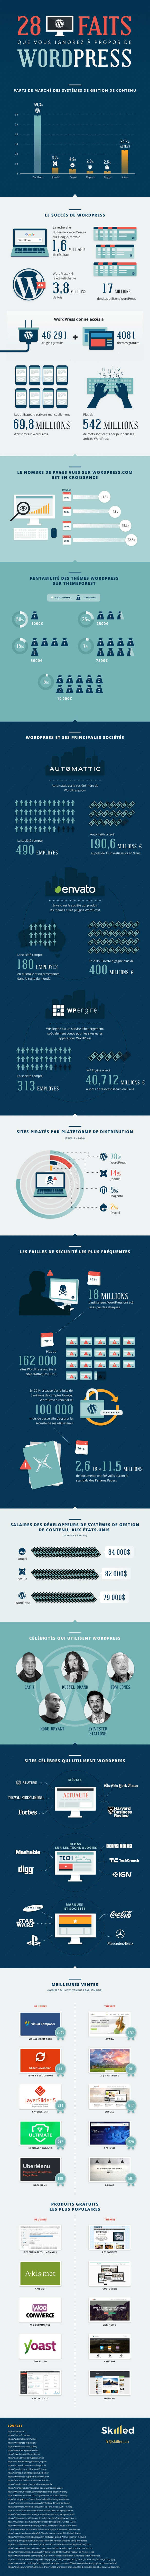 aetherium-infographie-28-faits-wordpress